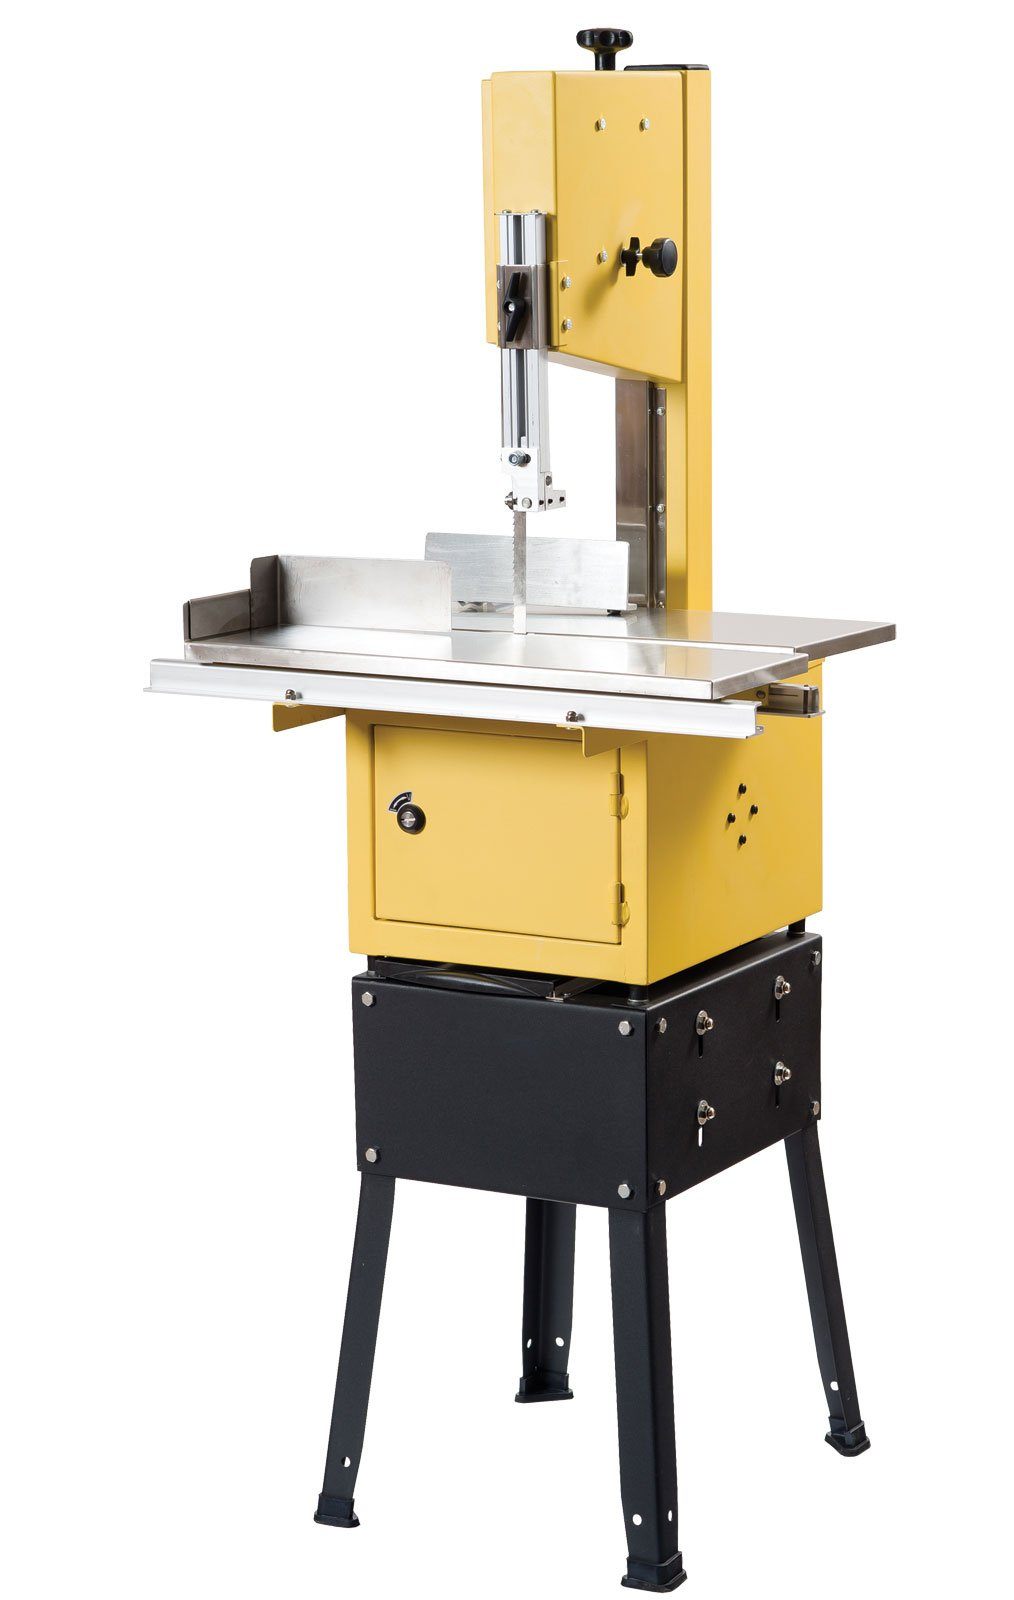 LEM Products 688 Electric Meat Saw